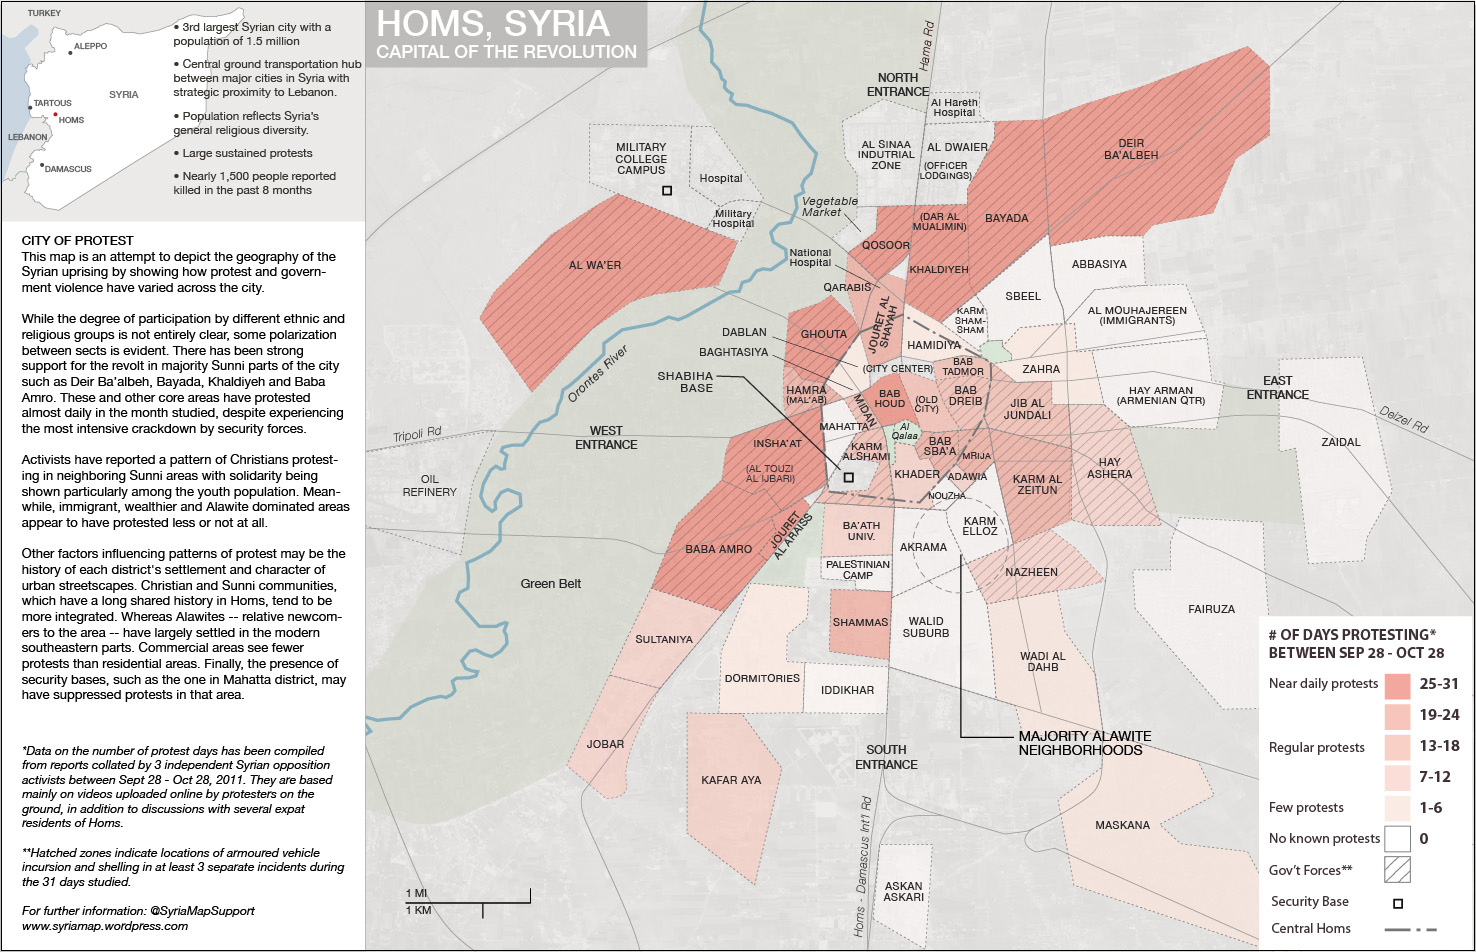 Homs Capital of the Revolution Syria Map